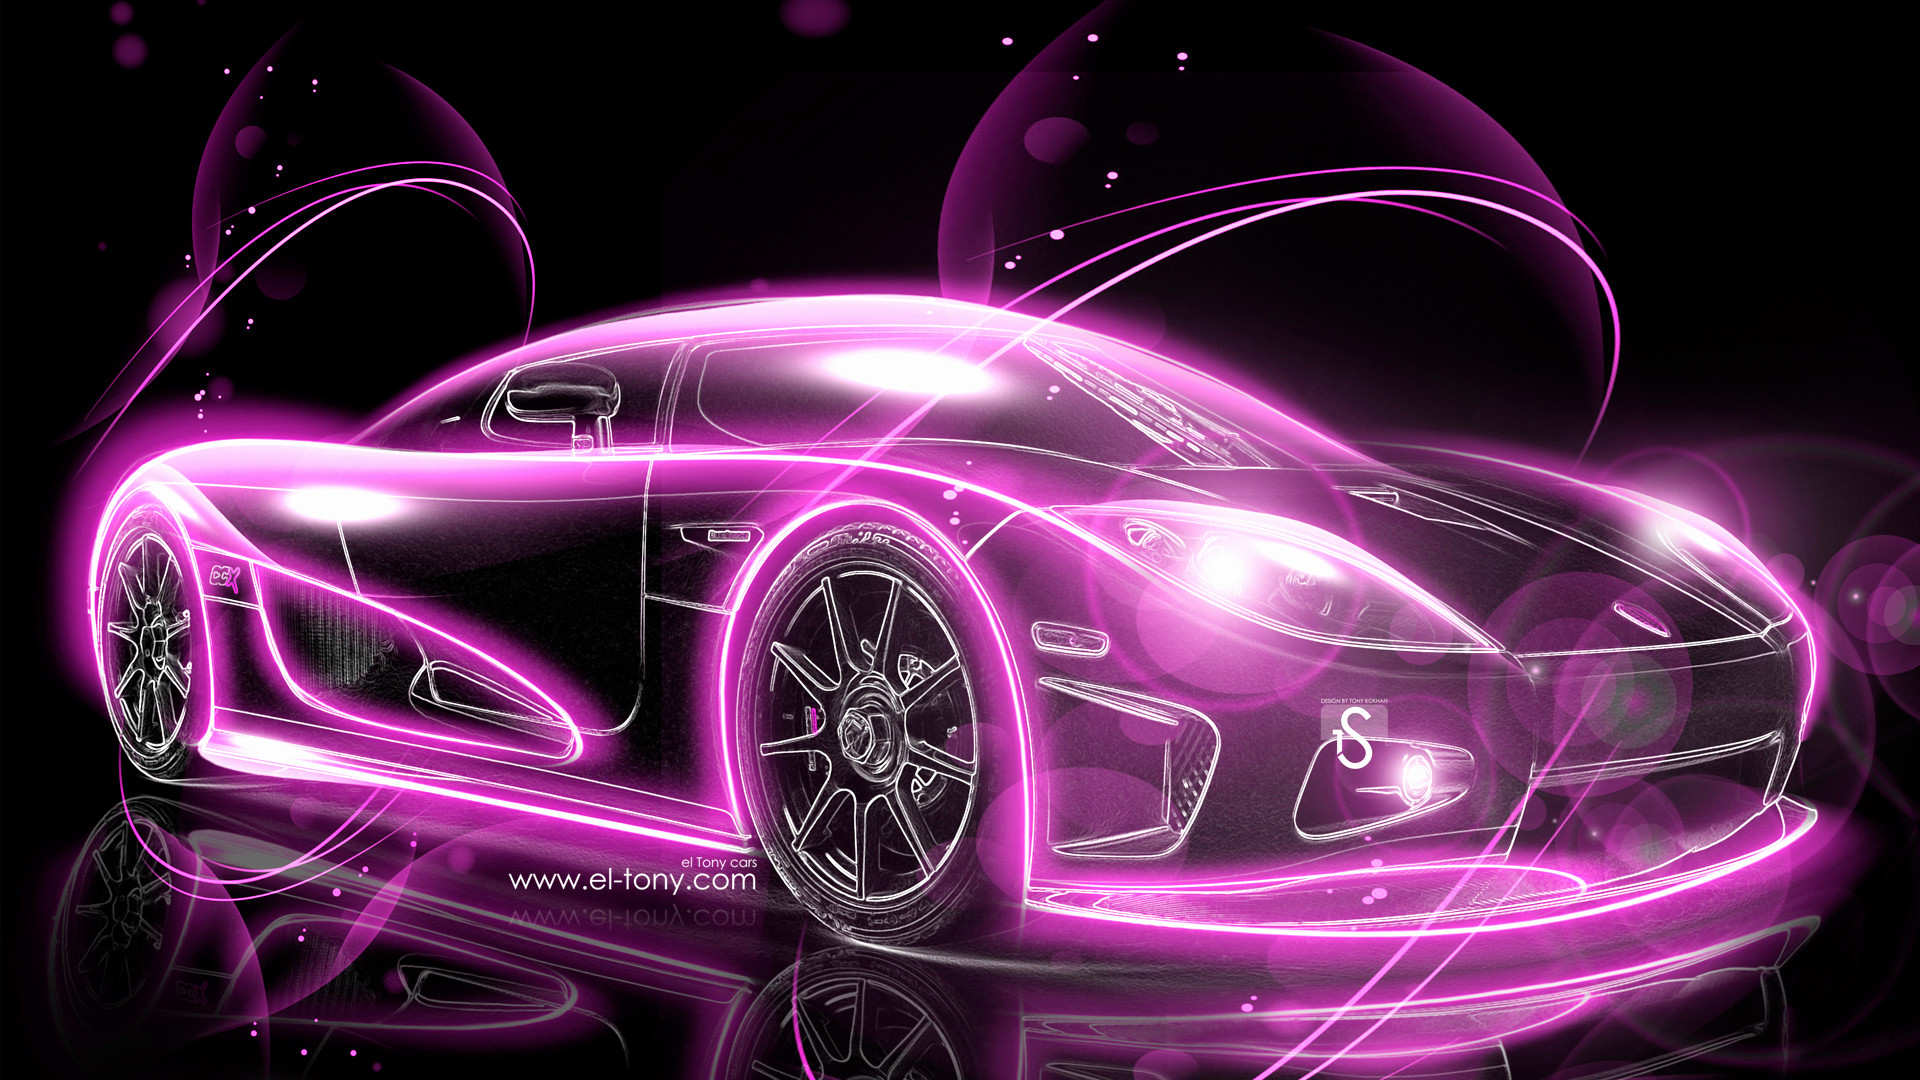 Pink Cars Wallpaper Hd For Desktop 70 Pictures